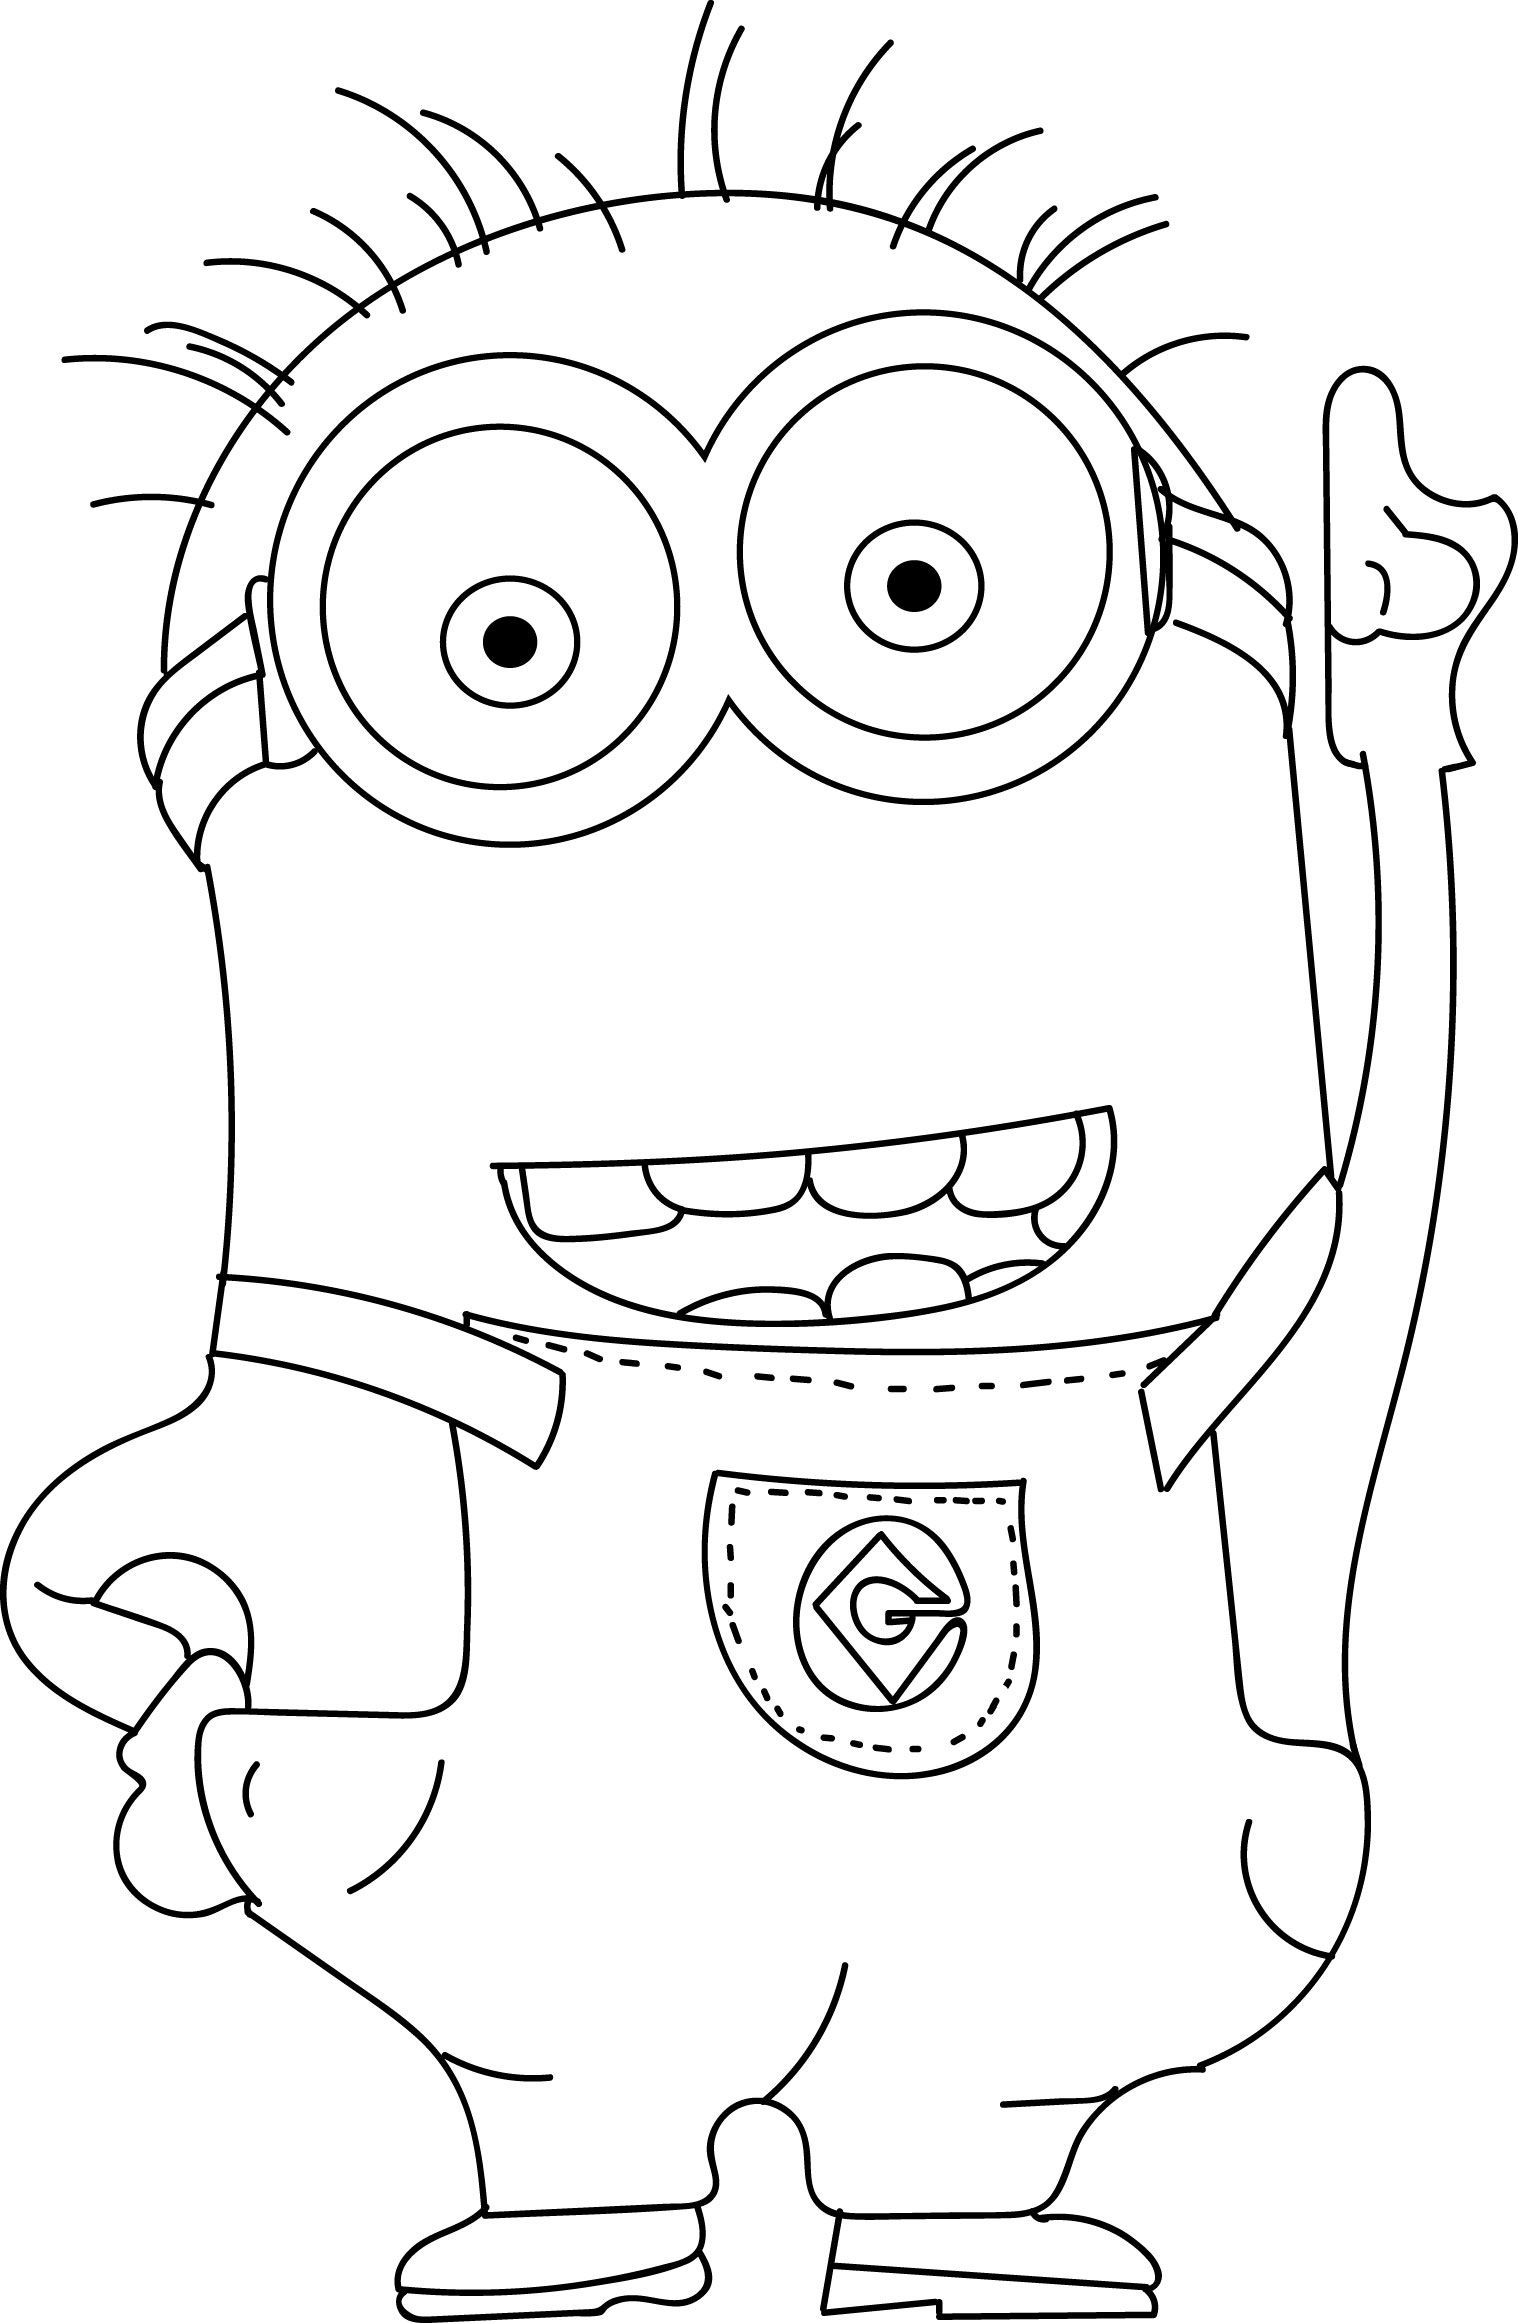 despicable me minions coloring pages despicable me minions coloring pages in color sketch minions me pages despicable coloring